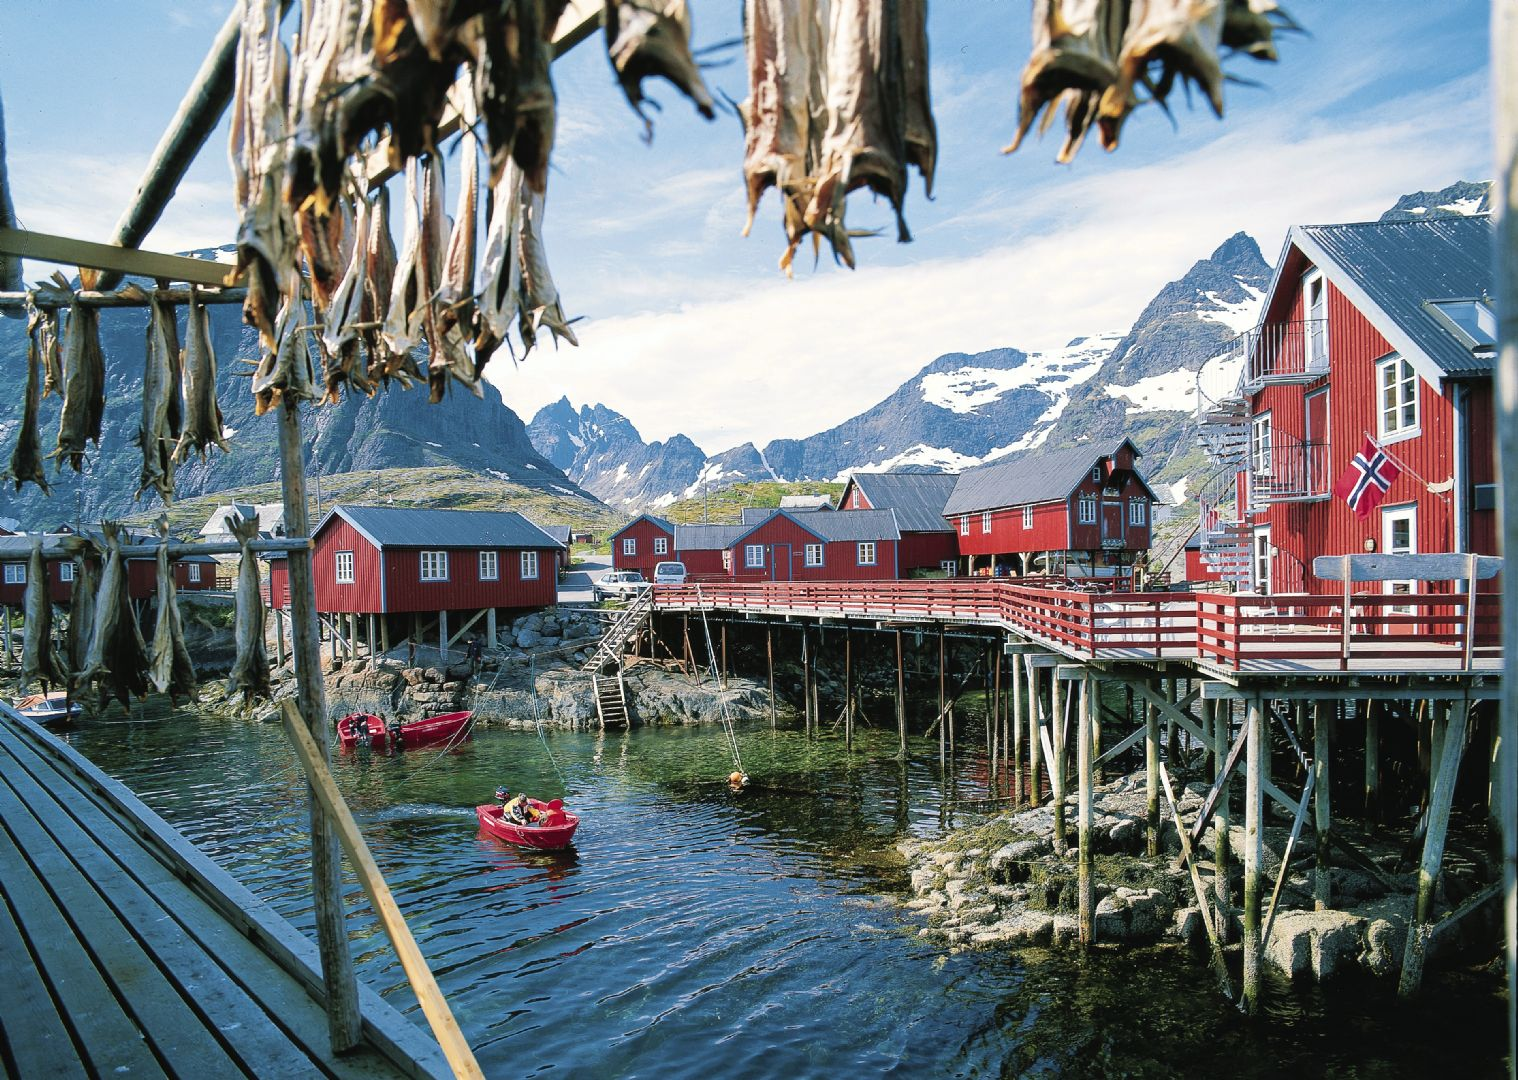 042000-99#30.jpg - Norway - Lofoten Islands - Self-Guided Leisure Cycling Holiday - Leisure Cycling